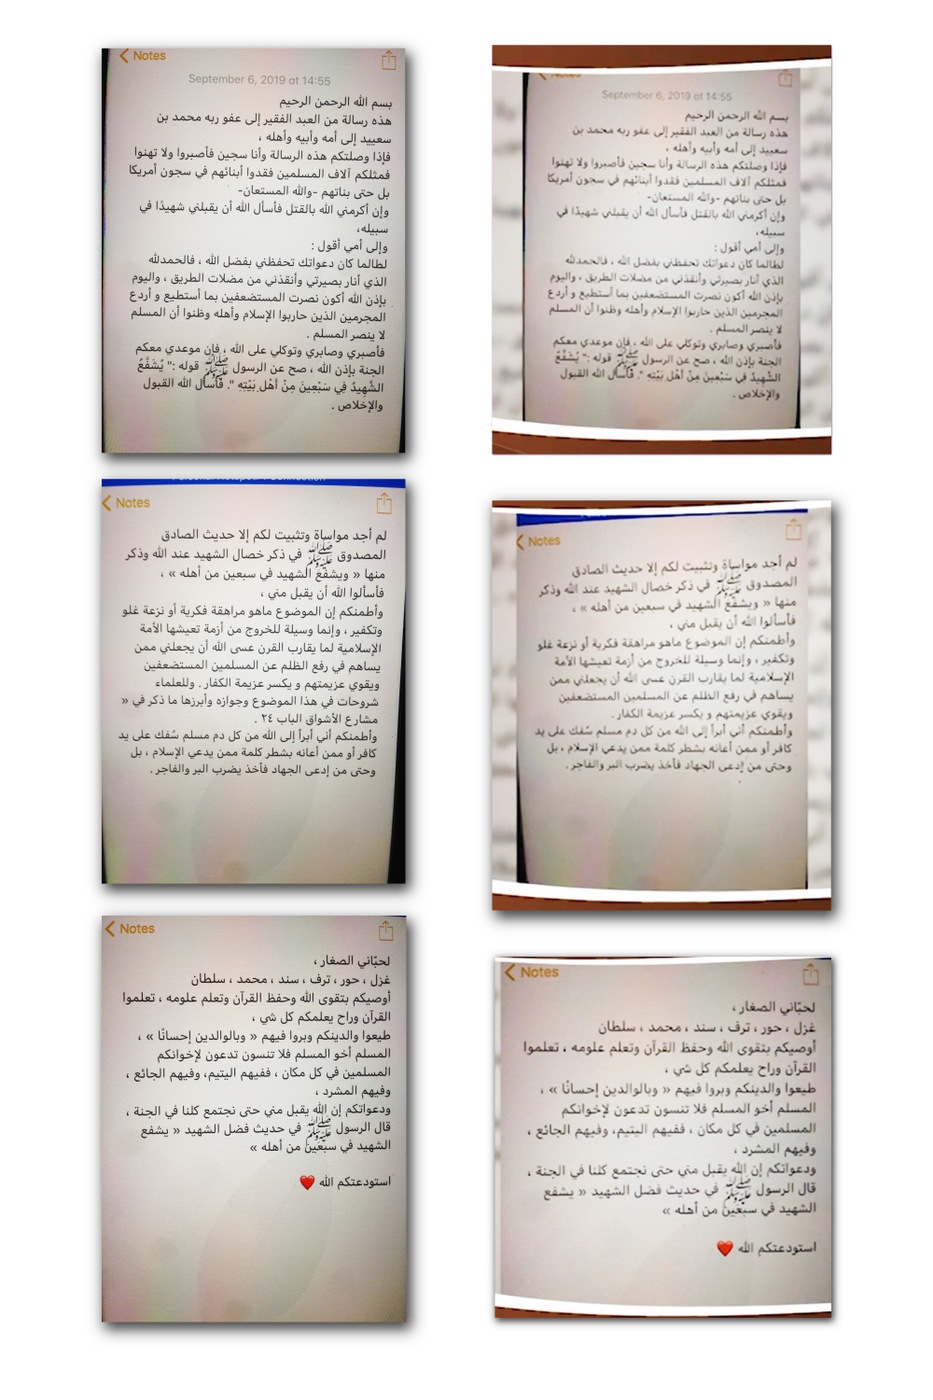 Side-by-side comparison of Pensacola shooter Mohammed Saeed al-Shamrani's notes (left side) with al Qaeda in the Arabian Peninsula's original claim of responsibility. (Part of virtual press conference held May 18, 2020 at DOJ.)